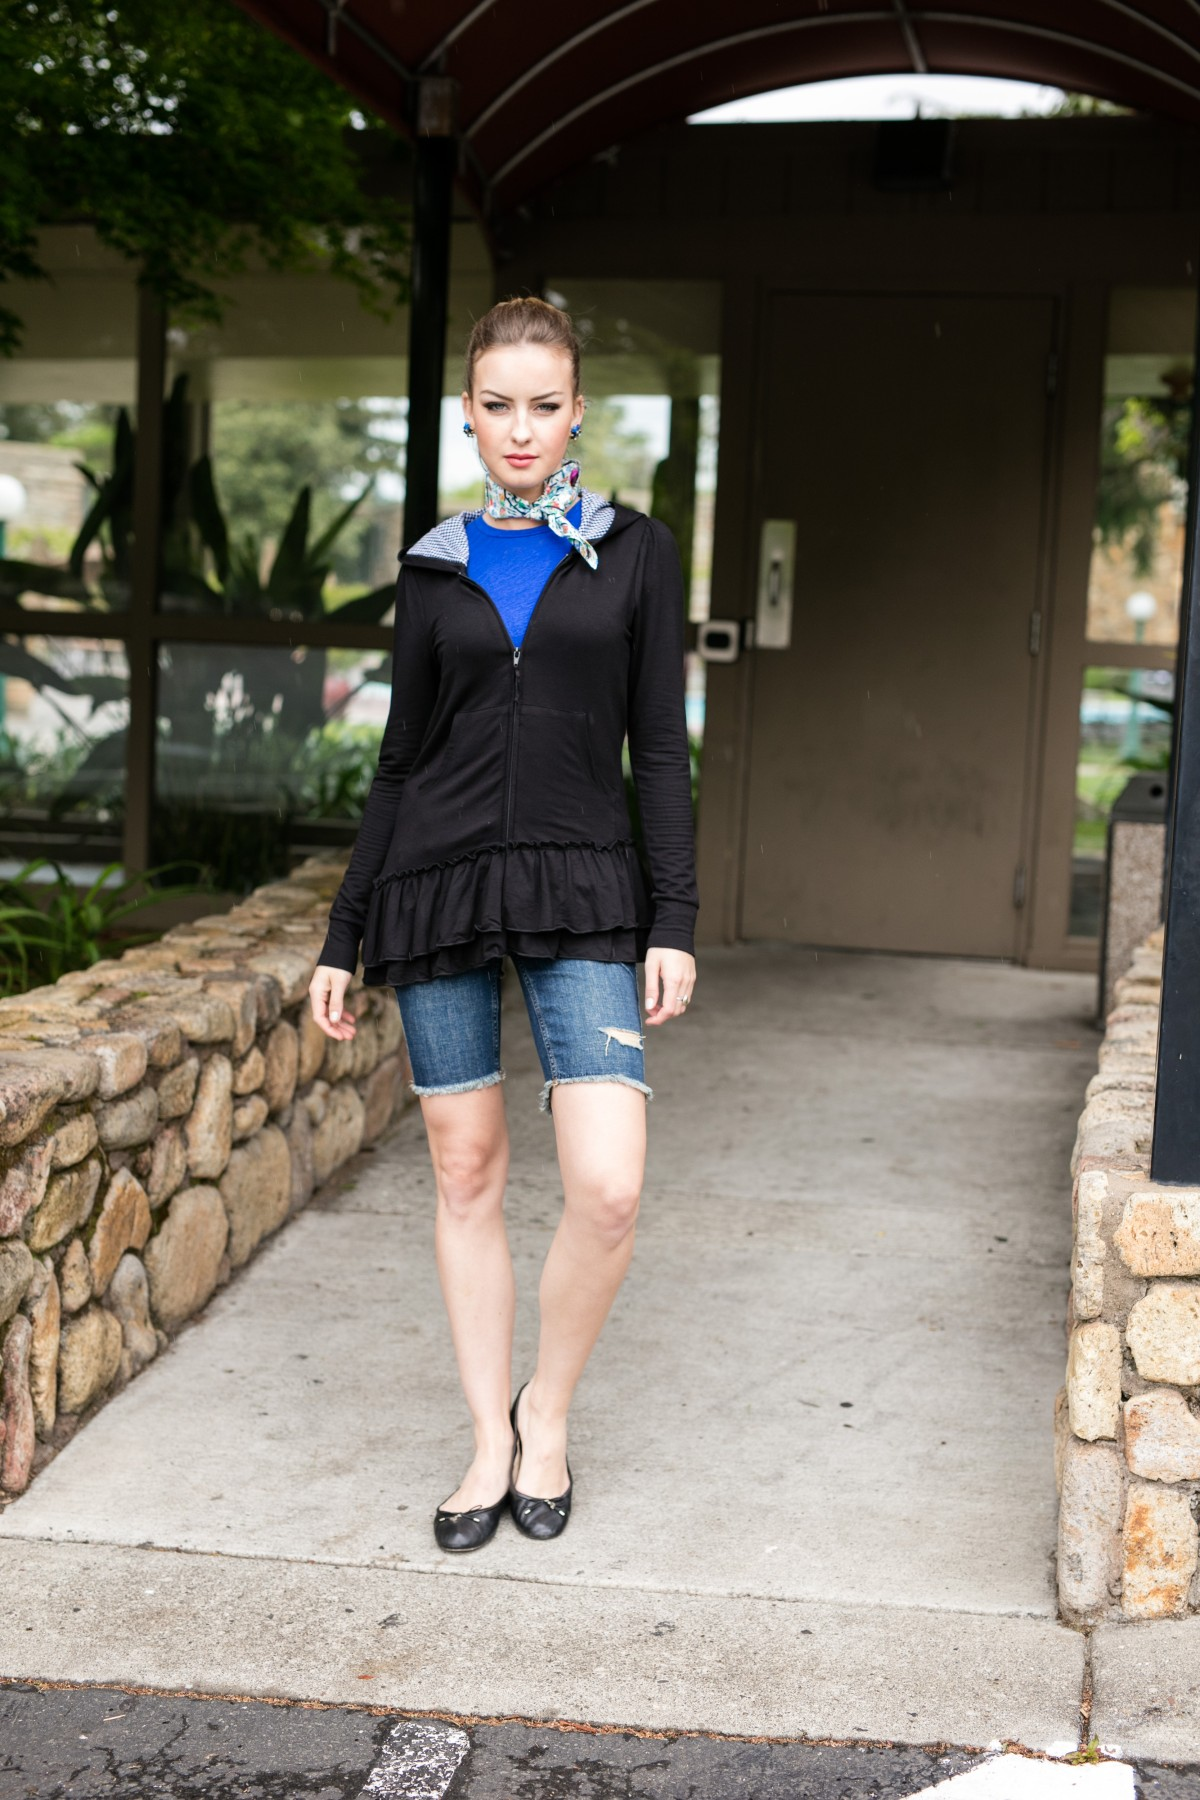 The Emma In Black Evys Tree Blog Hem Welcome Back To Ruffle This Time Style Has Been A Favorite Recurring One Fun Piece Incorporated Flattering Bottom Ruffles